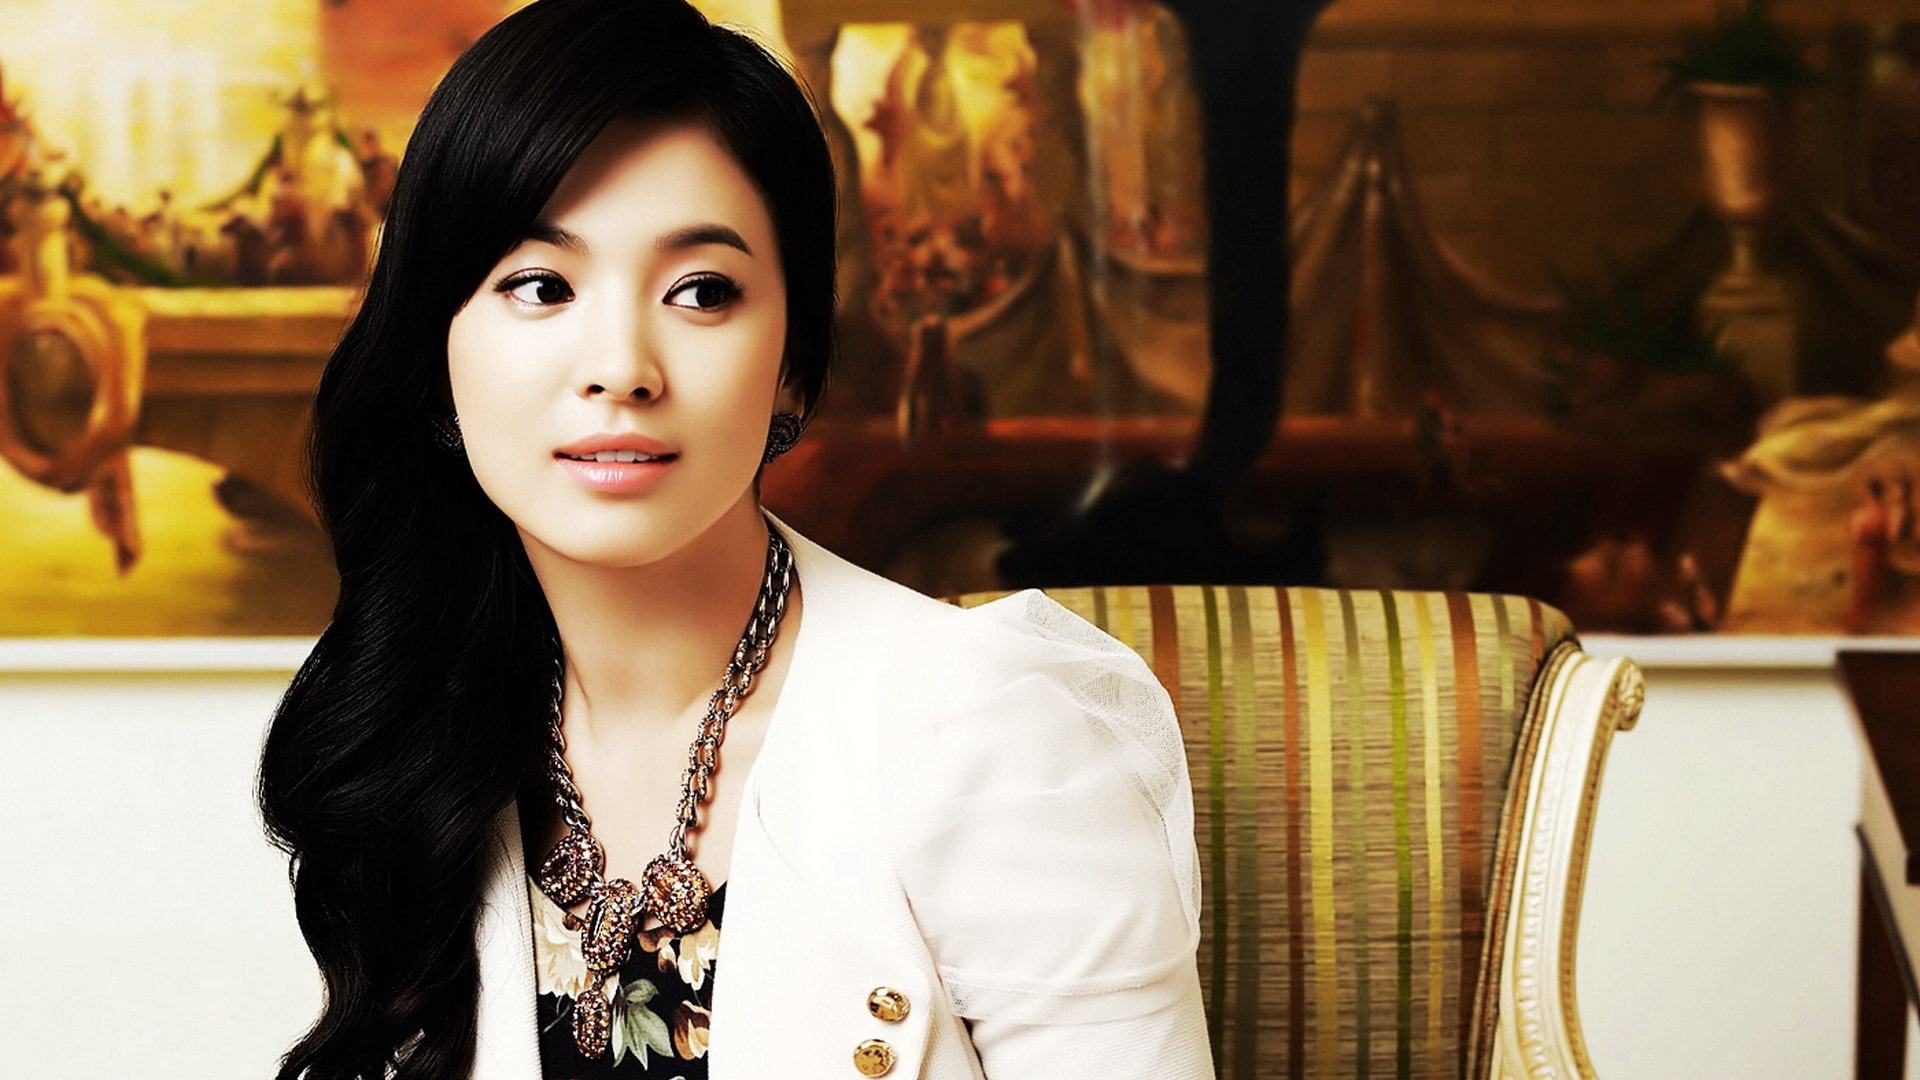 1920x1080 - Song Hye-Kyo Wallpapers 13